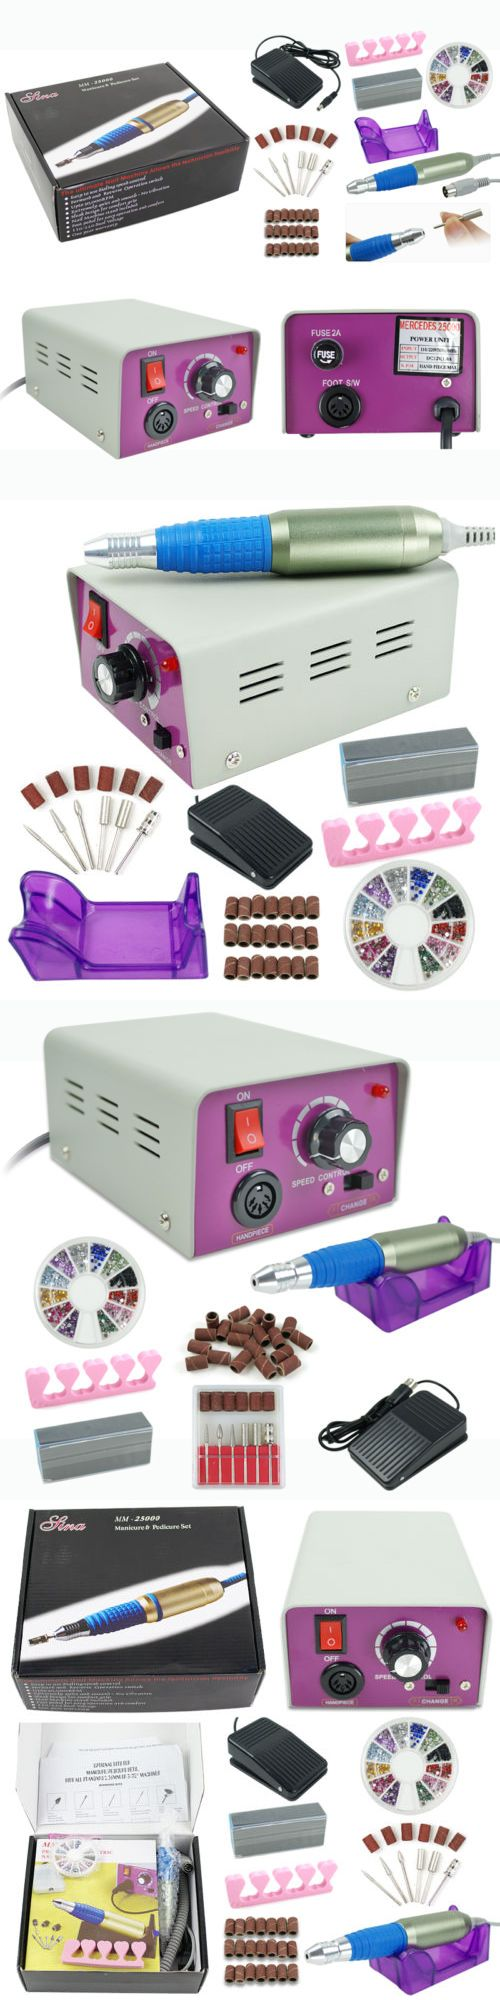 Manicure Pedicure Tools and Kits: Pro Purple Acrylic Electric Nail Drill File Buffer Bit Manicure Pedicure Kit Set BUY IT NOW ONLY: $31.55